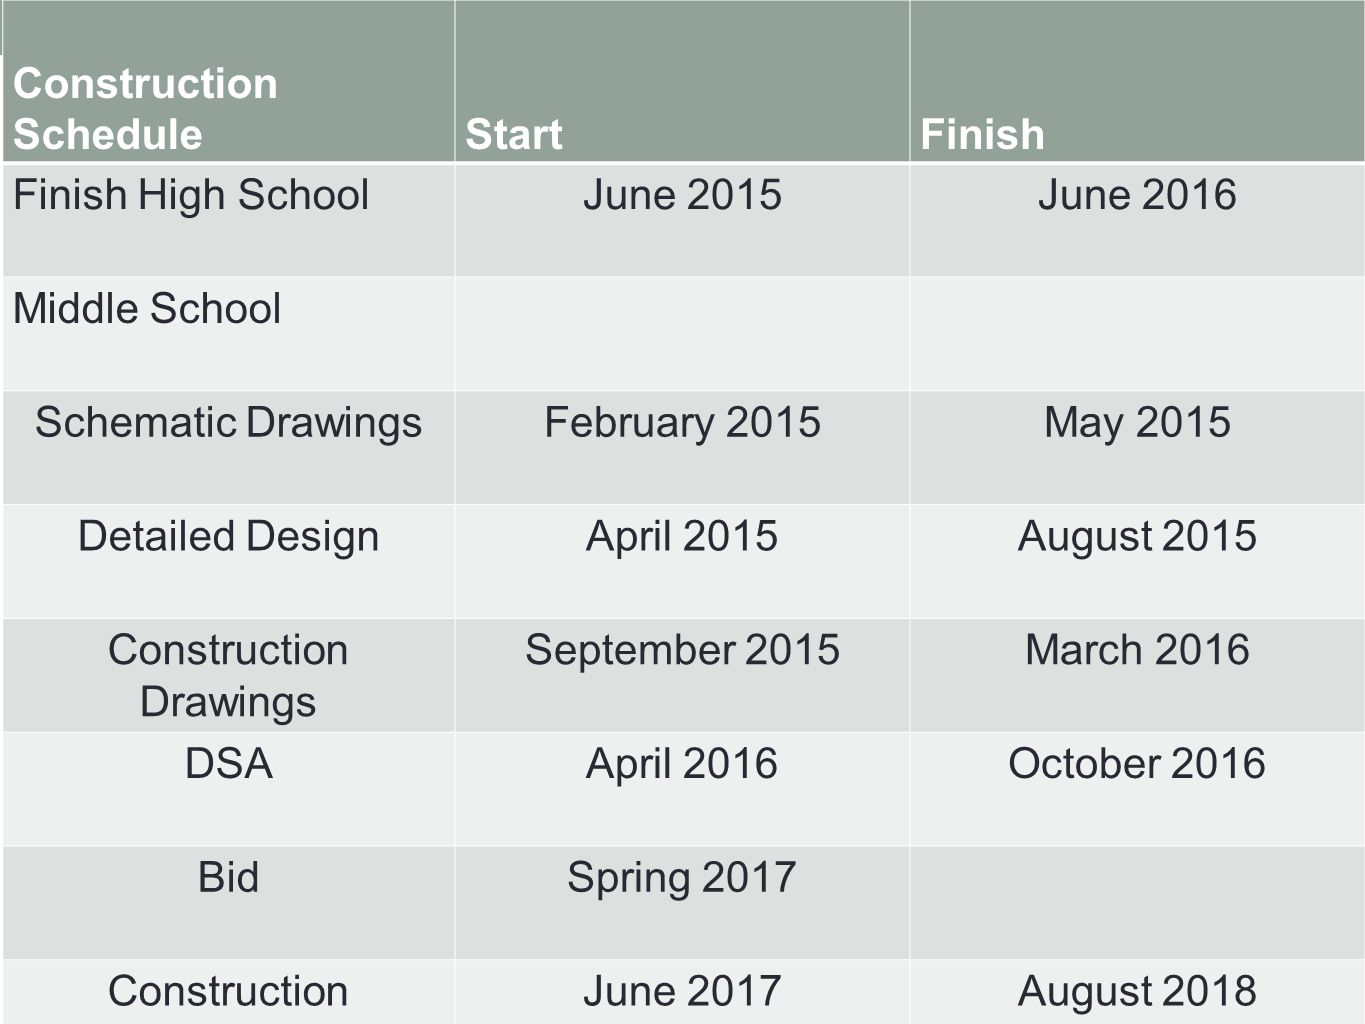 Construction ScheduleStartFinish Finish High SchoolJune 2015June 2016 Middle School Schematic DrawingsFebruary 2015May 2015 Detailed DesignApril 2015August 2015 Construction Drawings September 2015March 2016 DSAApril 2016October 2016 BidSpring 2017 ConstructionJune 2017August 2018